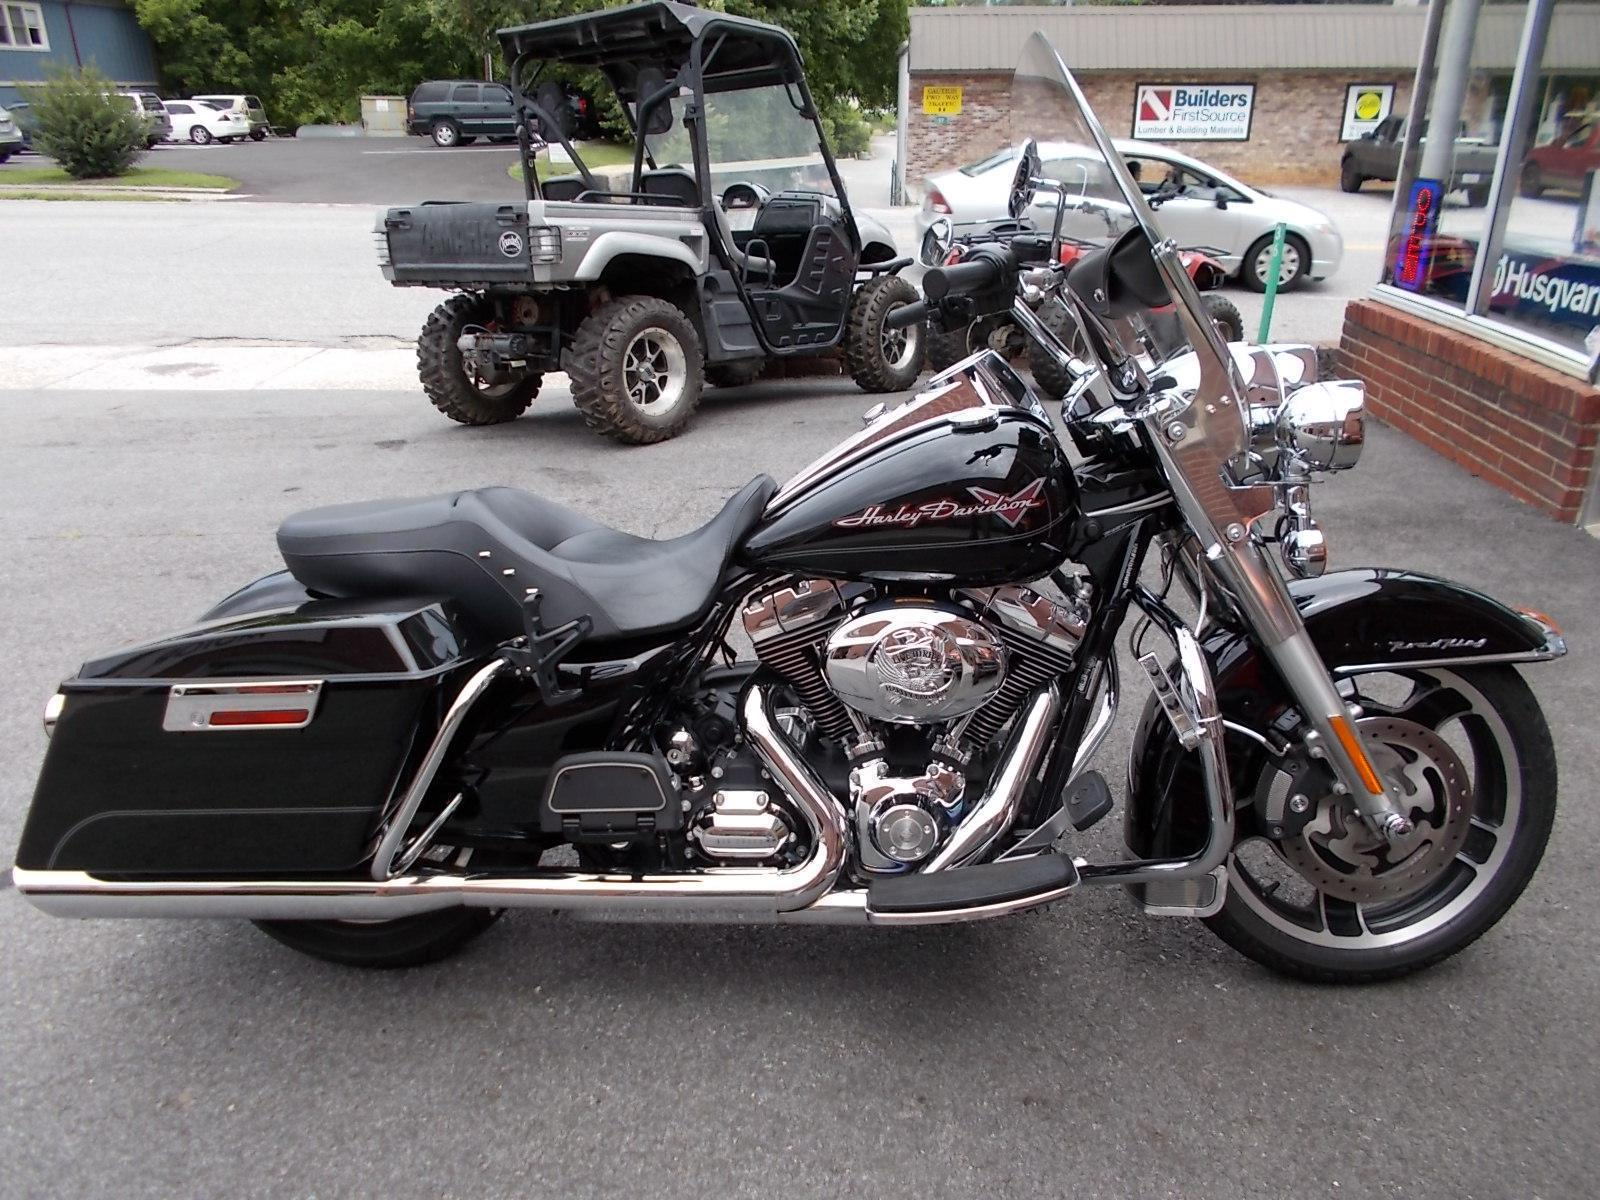 2010 Harley Davidson Road King Classic for sale in Blairsville GA